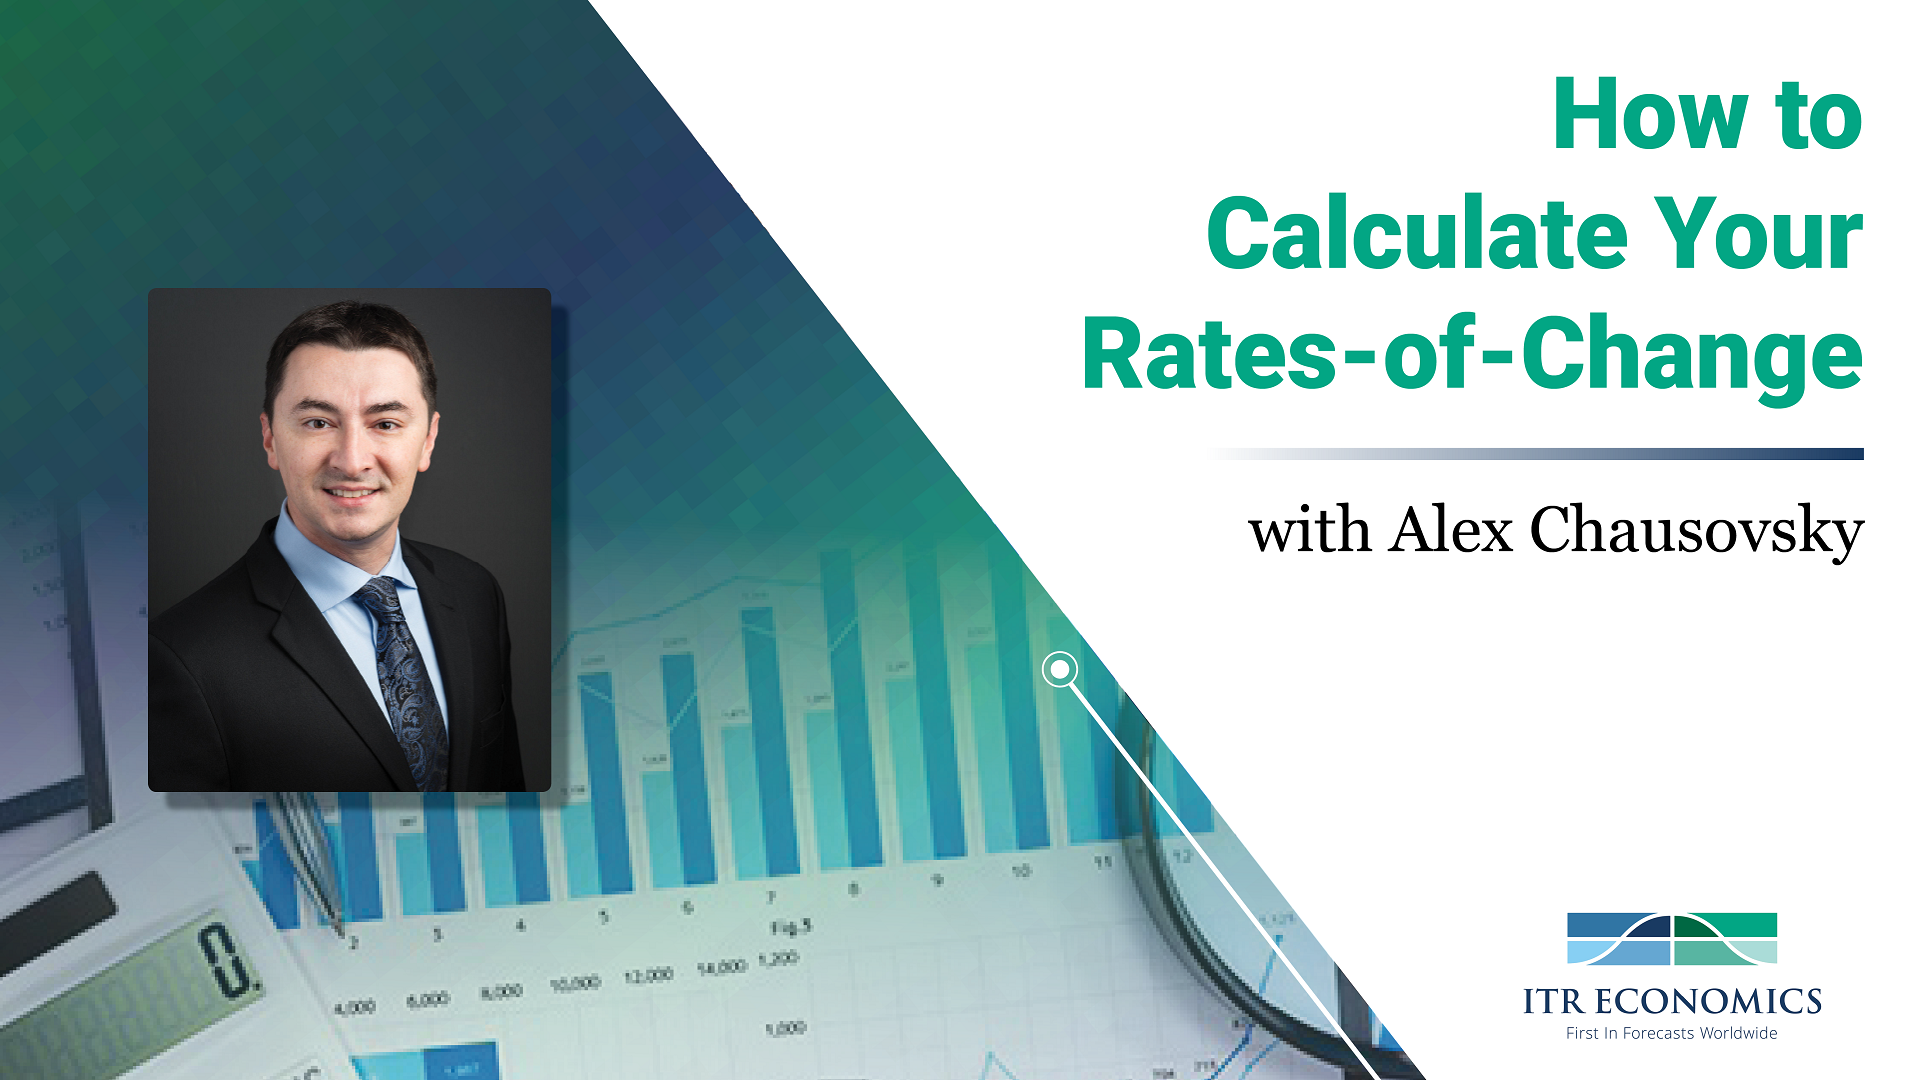 Calculating Rates-of-Change